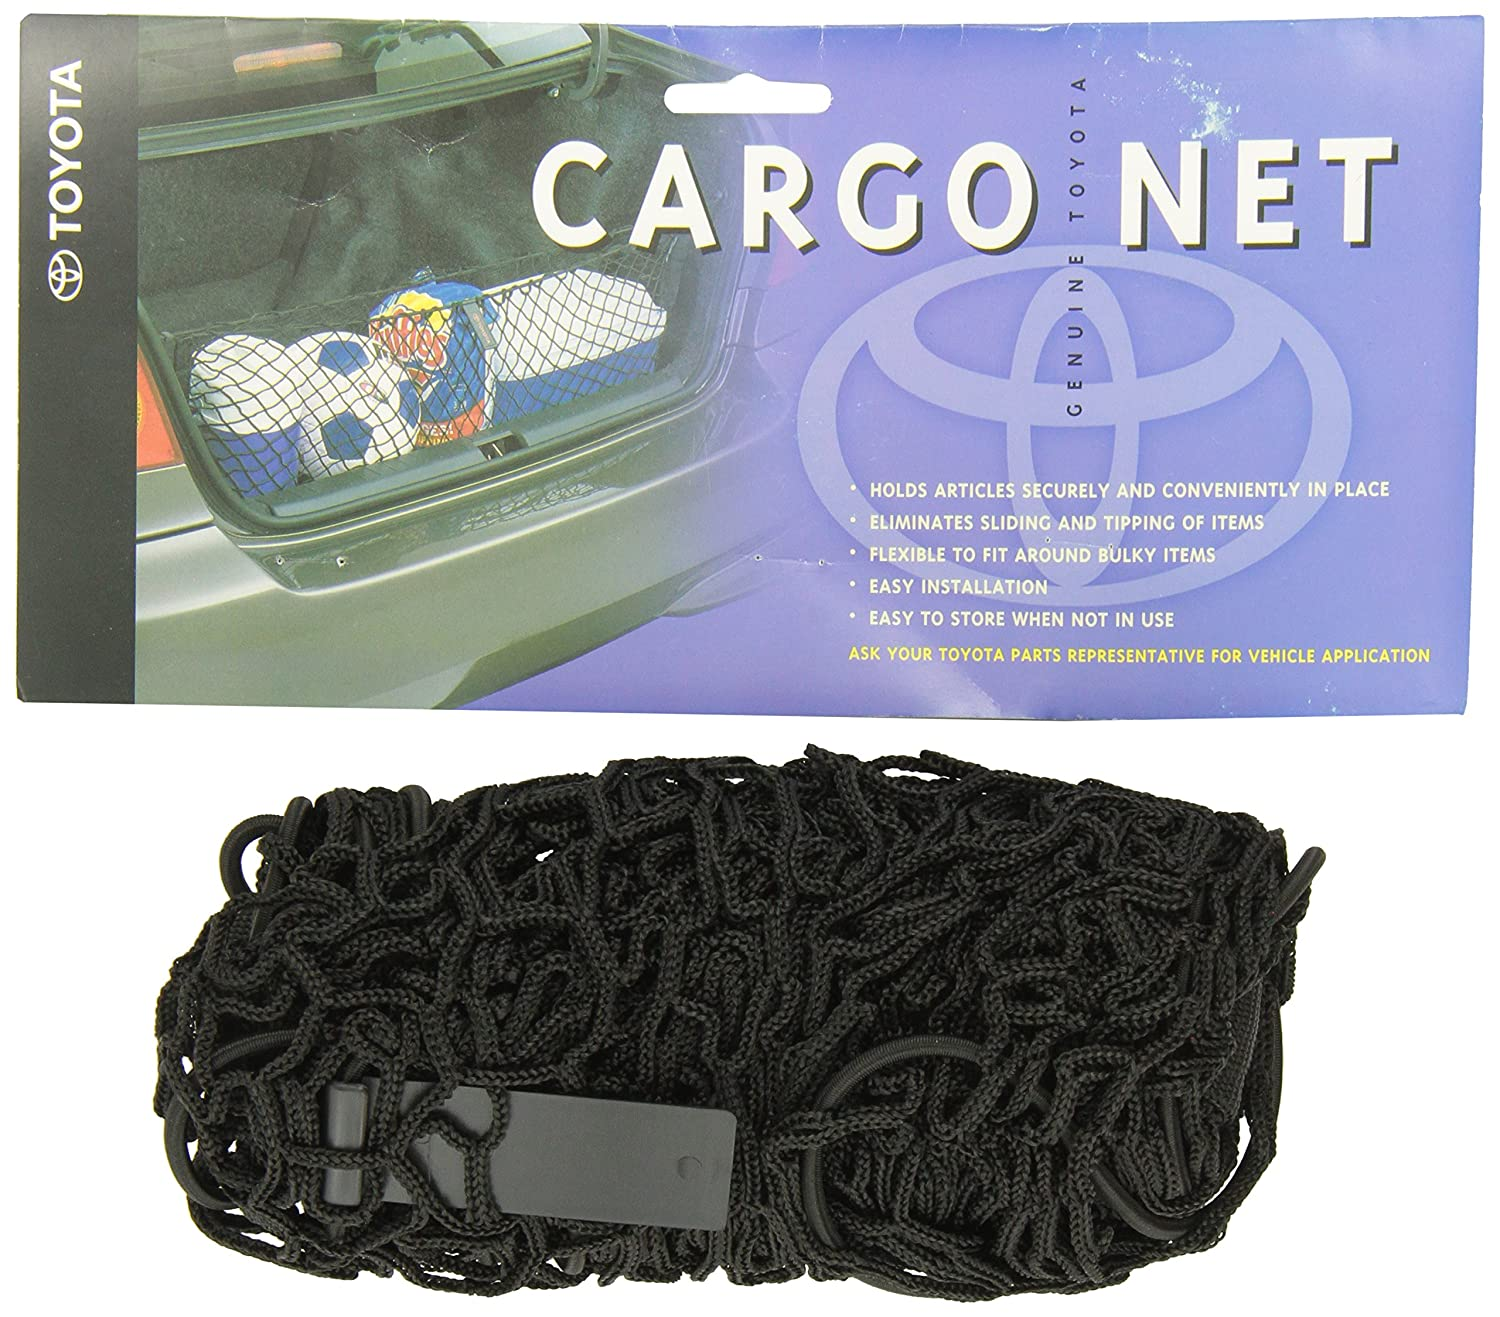 Genuine Toyota Accessories PT347-0T090 Cargo Net for Select Venza Models